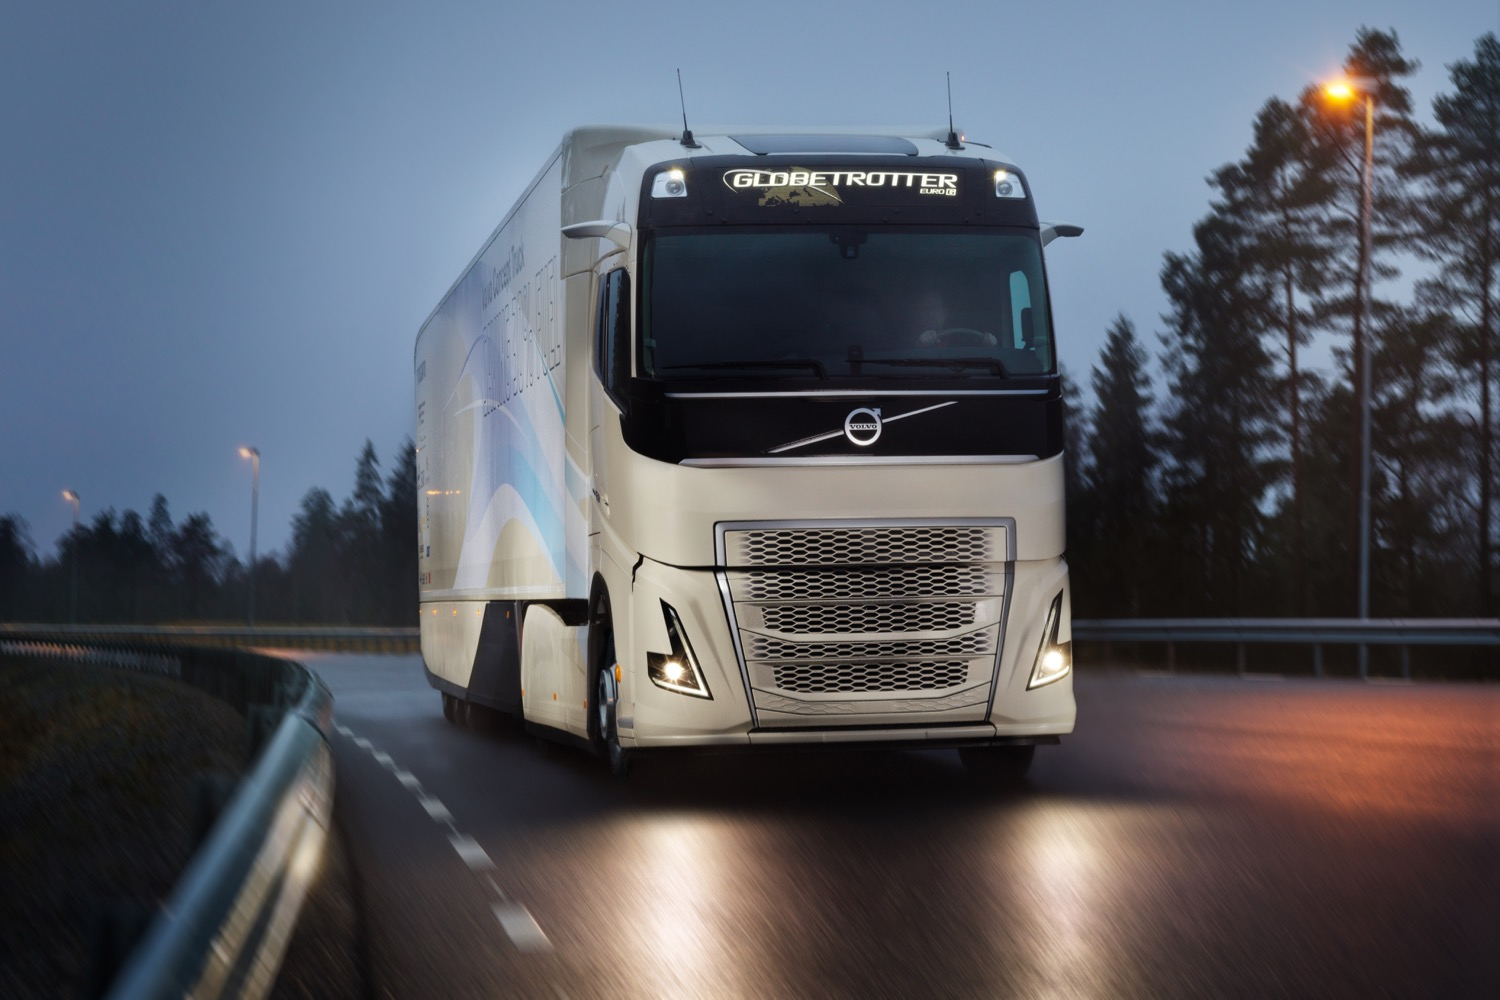 volvo concept truck uses hybrid power to cut fuel use